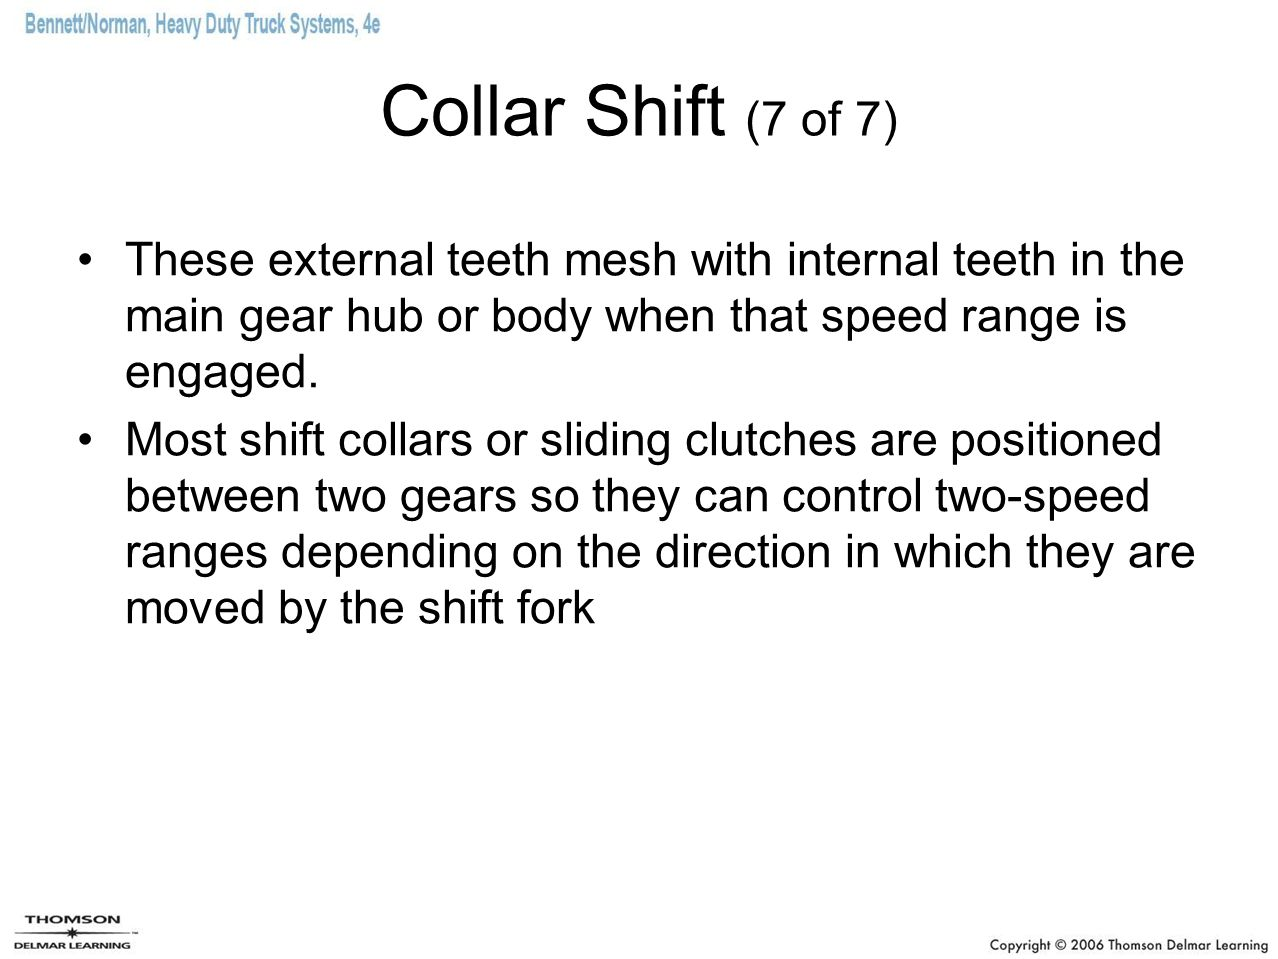 Collar Shift (7 of 7) These external teeth mesh with internal teeth in the main gear hub or body when that speed range is engaged.